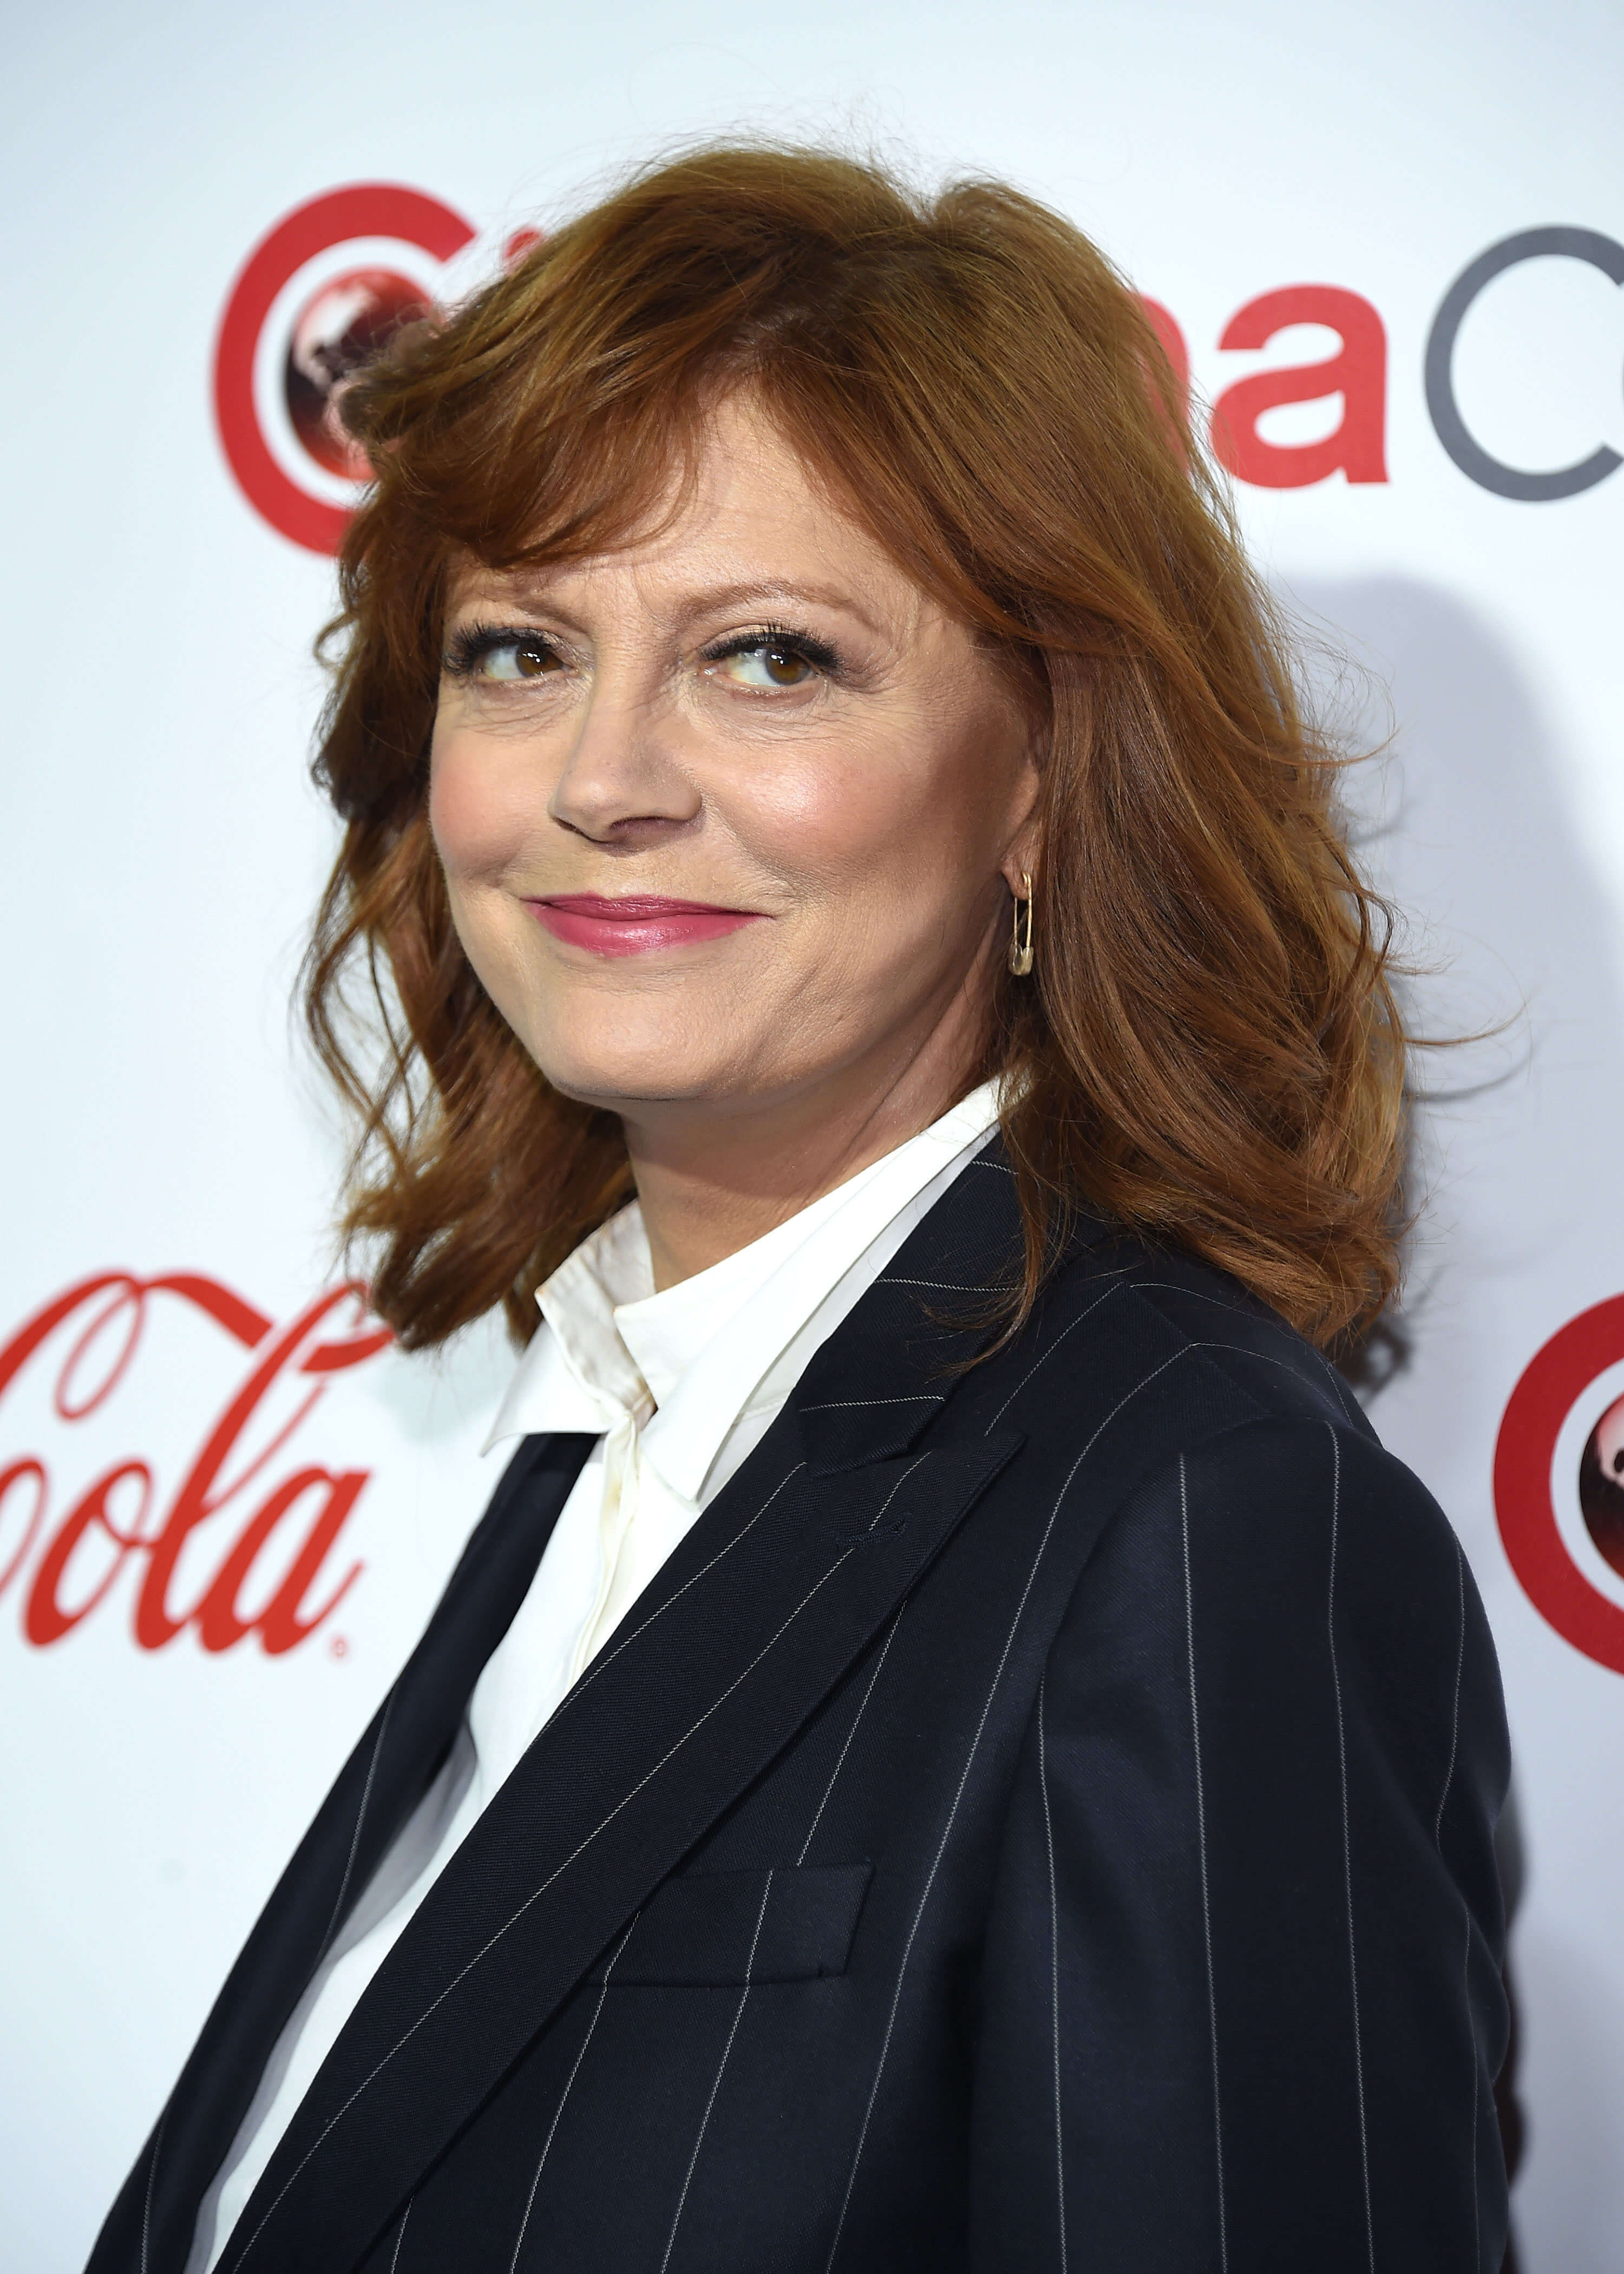 Susan Sarandon, Susan Sarandon wearing a tie, Susan Sarandon at an award show, Susan Sarandon wearing a suit